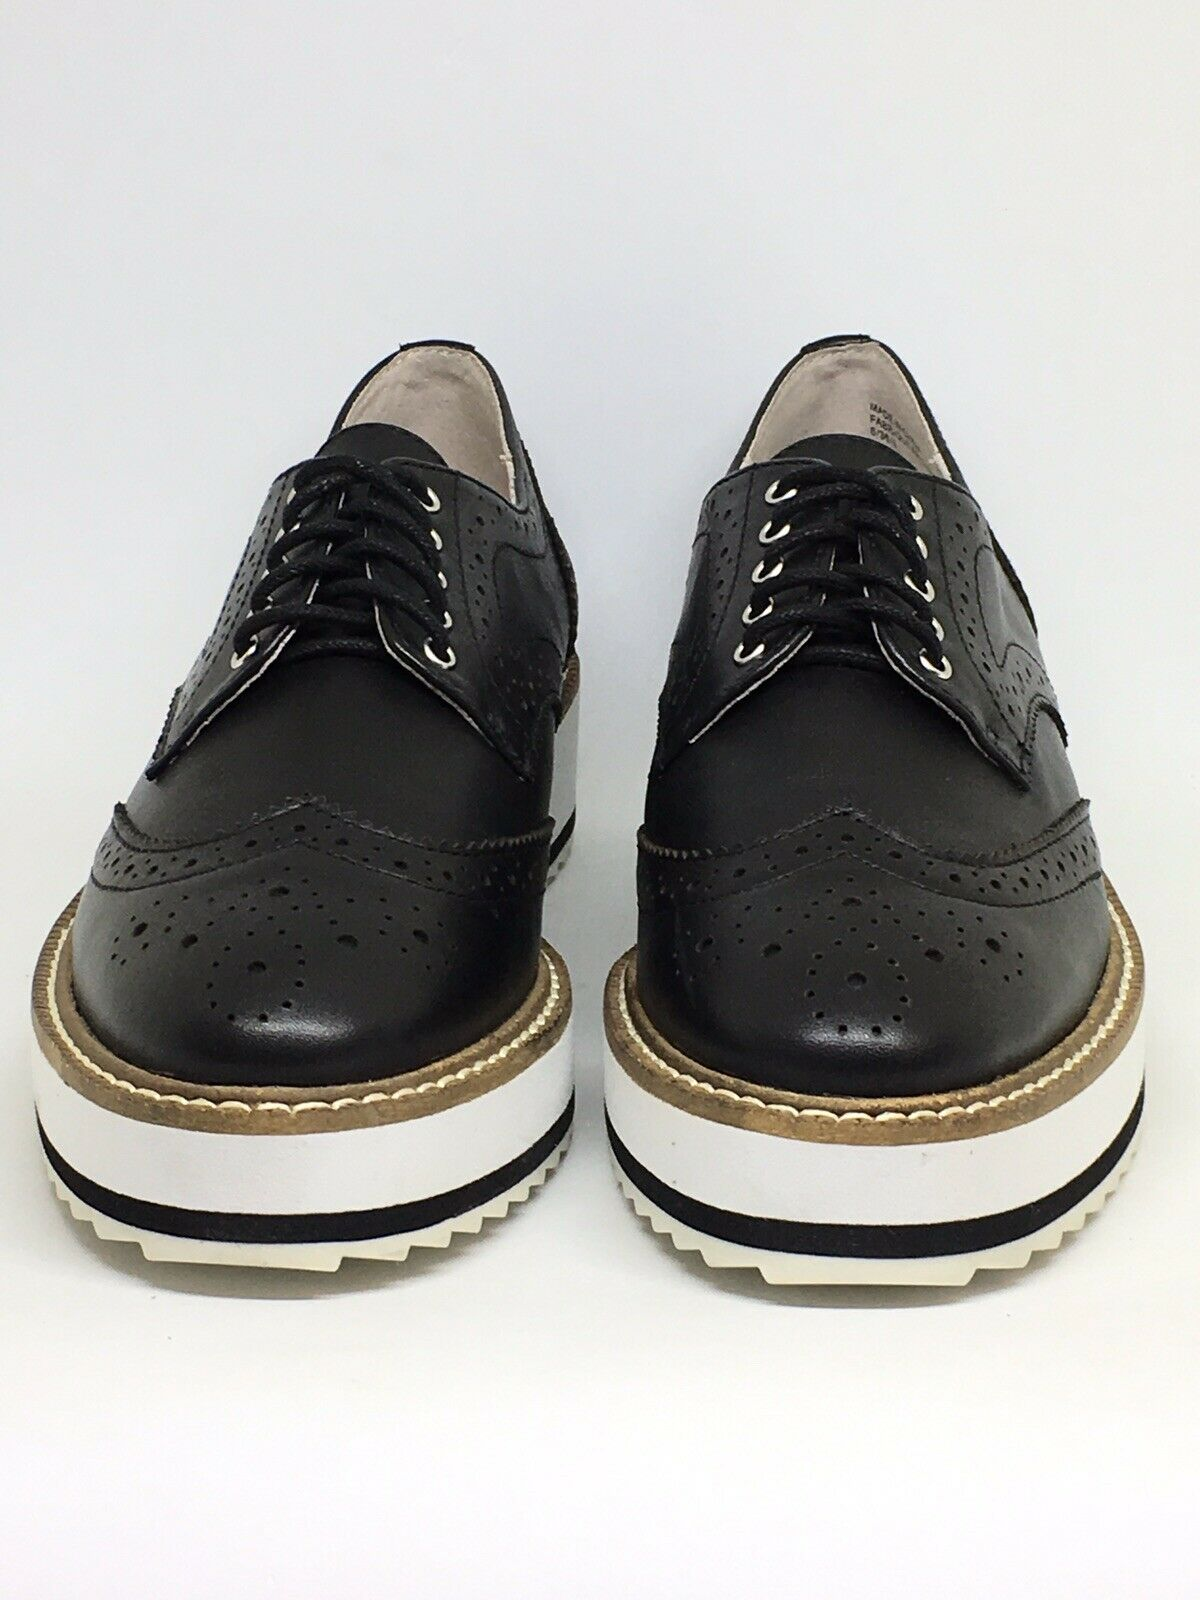 Shellys London Emma Women's Oxfords In Black UK Size 3.5, EU Size 36